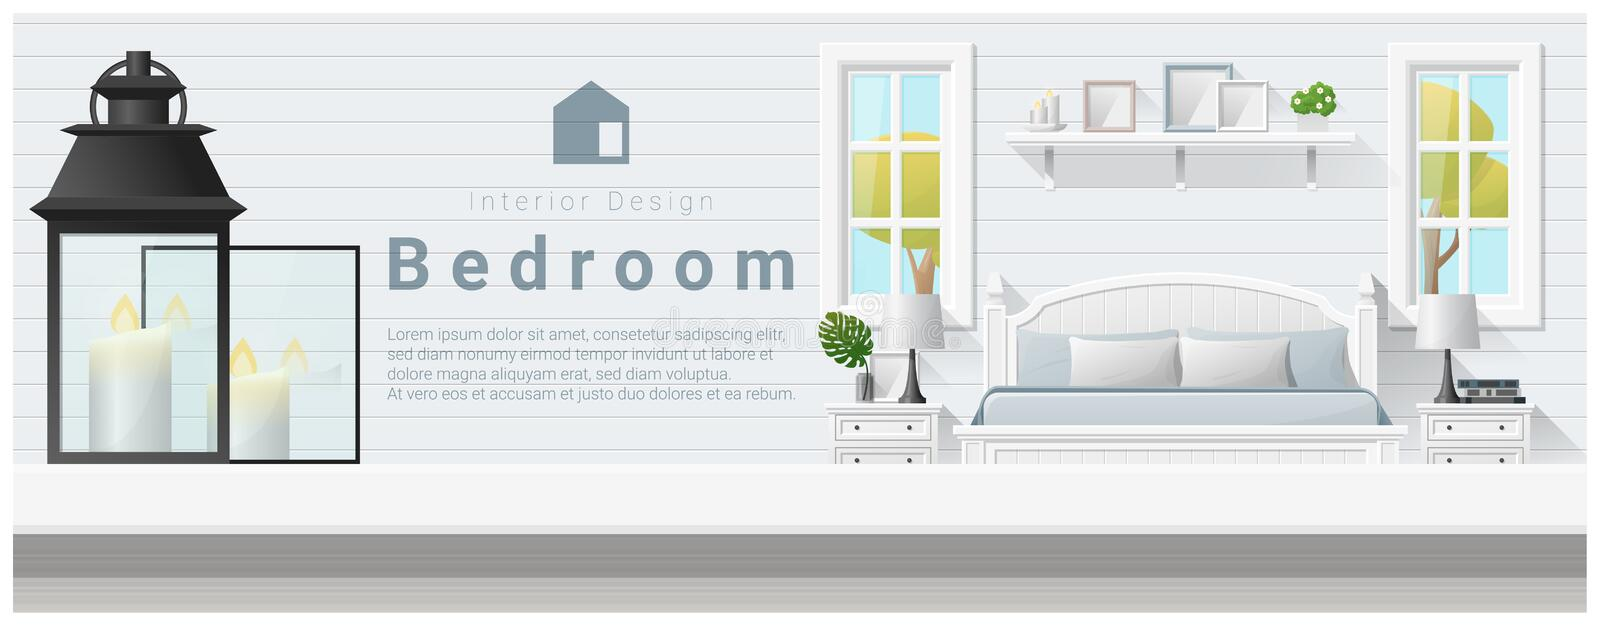 Interior design with table top and Modern bedroom background stock illustration